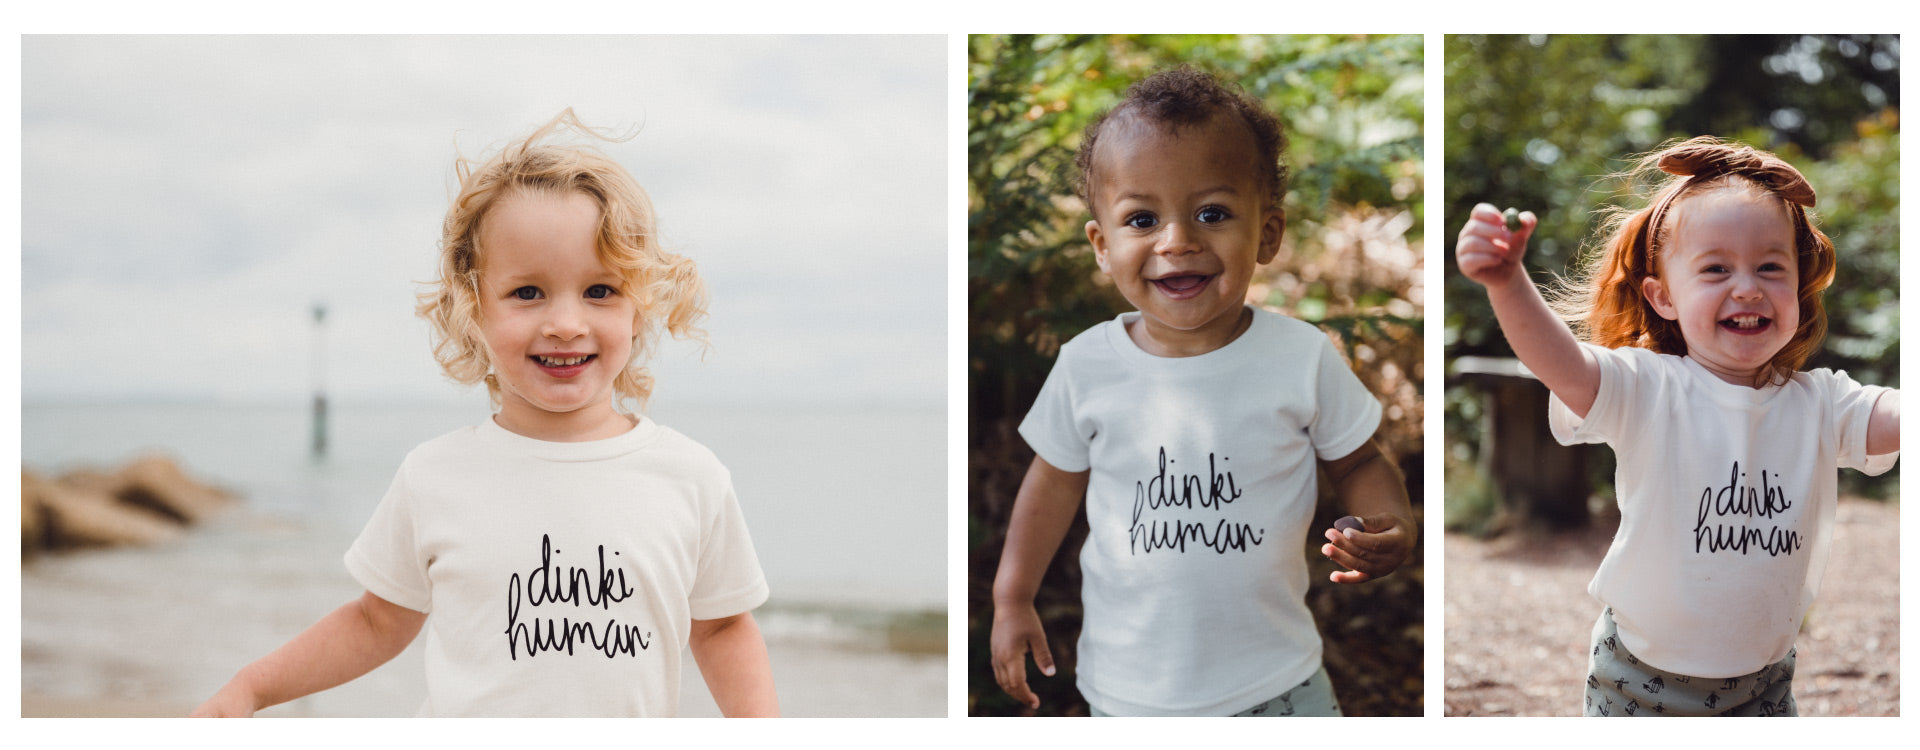 Dinki Human Organic Kids Clothes : Kids t-shirts and unisex kids clothes